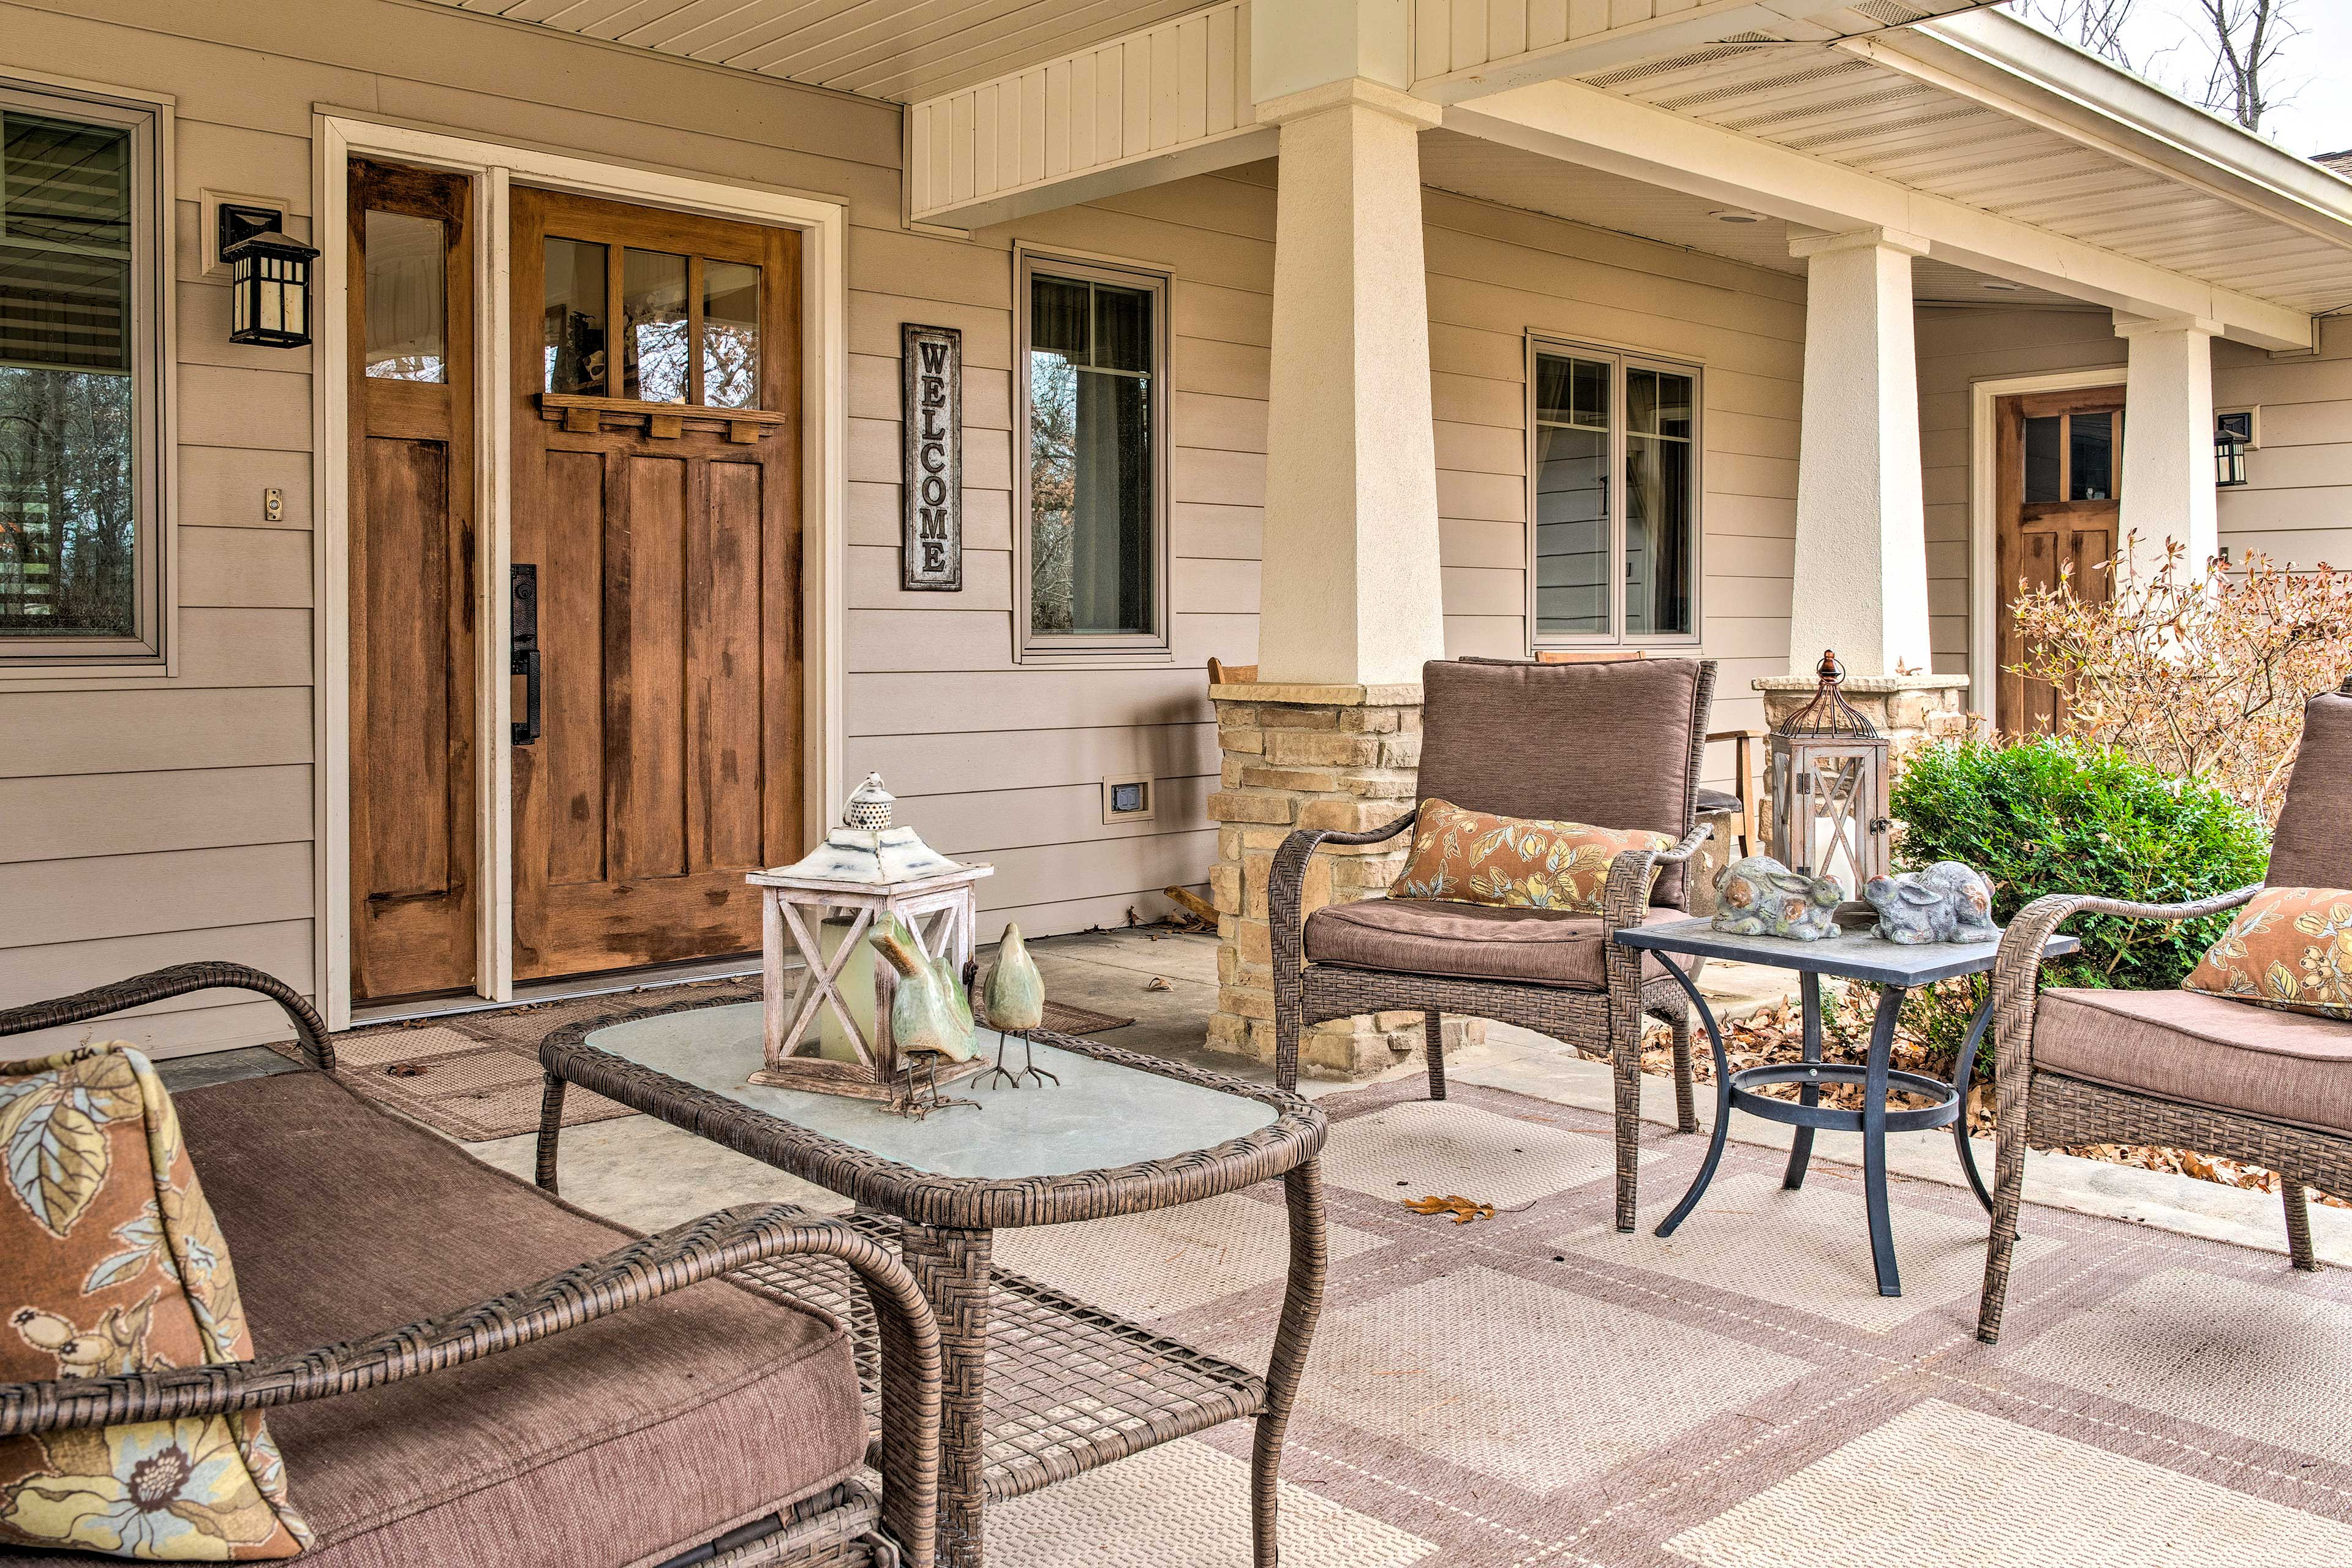 Spend a peaceful morning on the covered front porch.